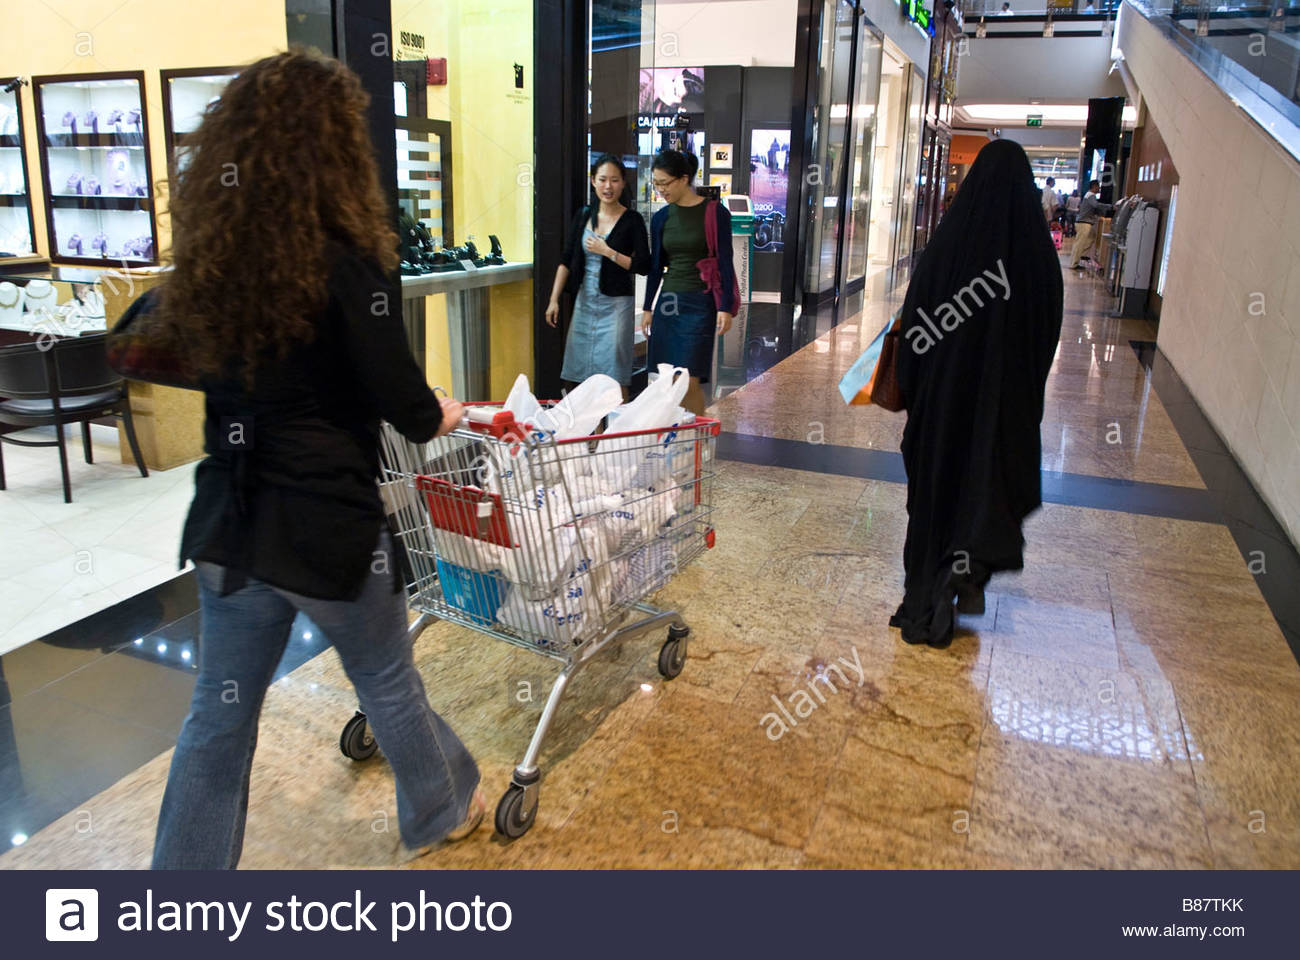 dubai People shopping in Carrefur inside the mall of the emirates - Stock Image